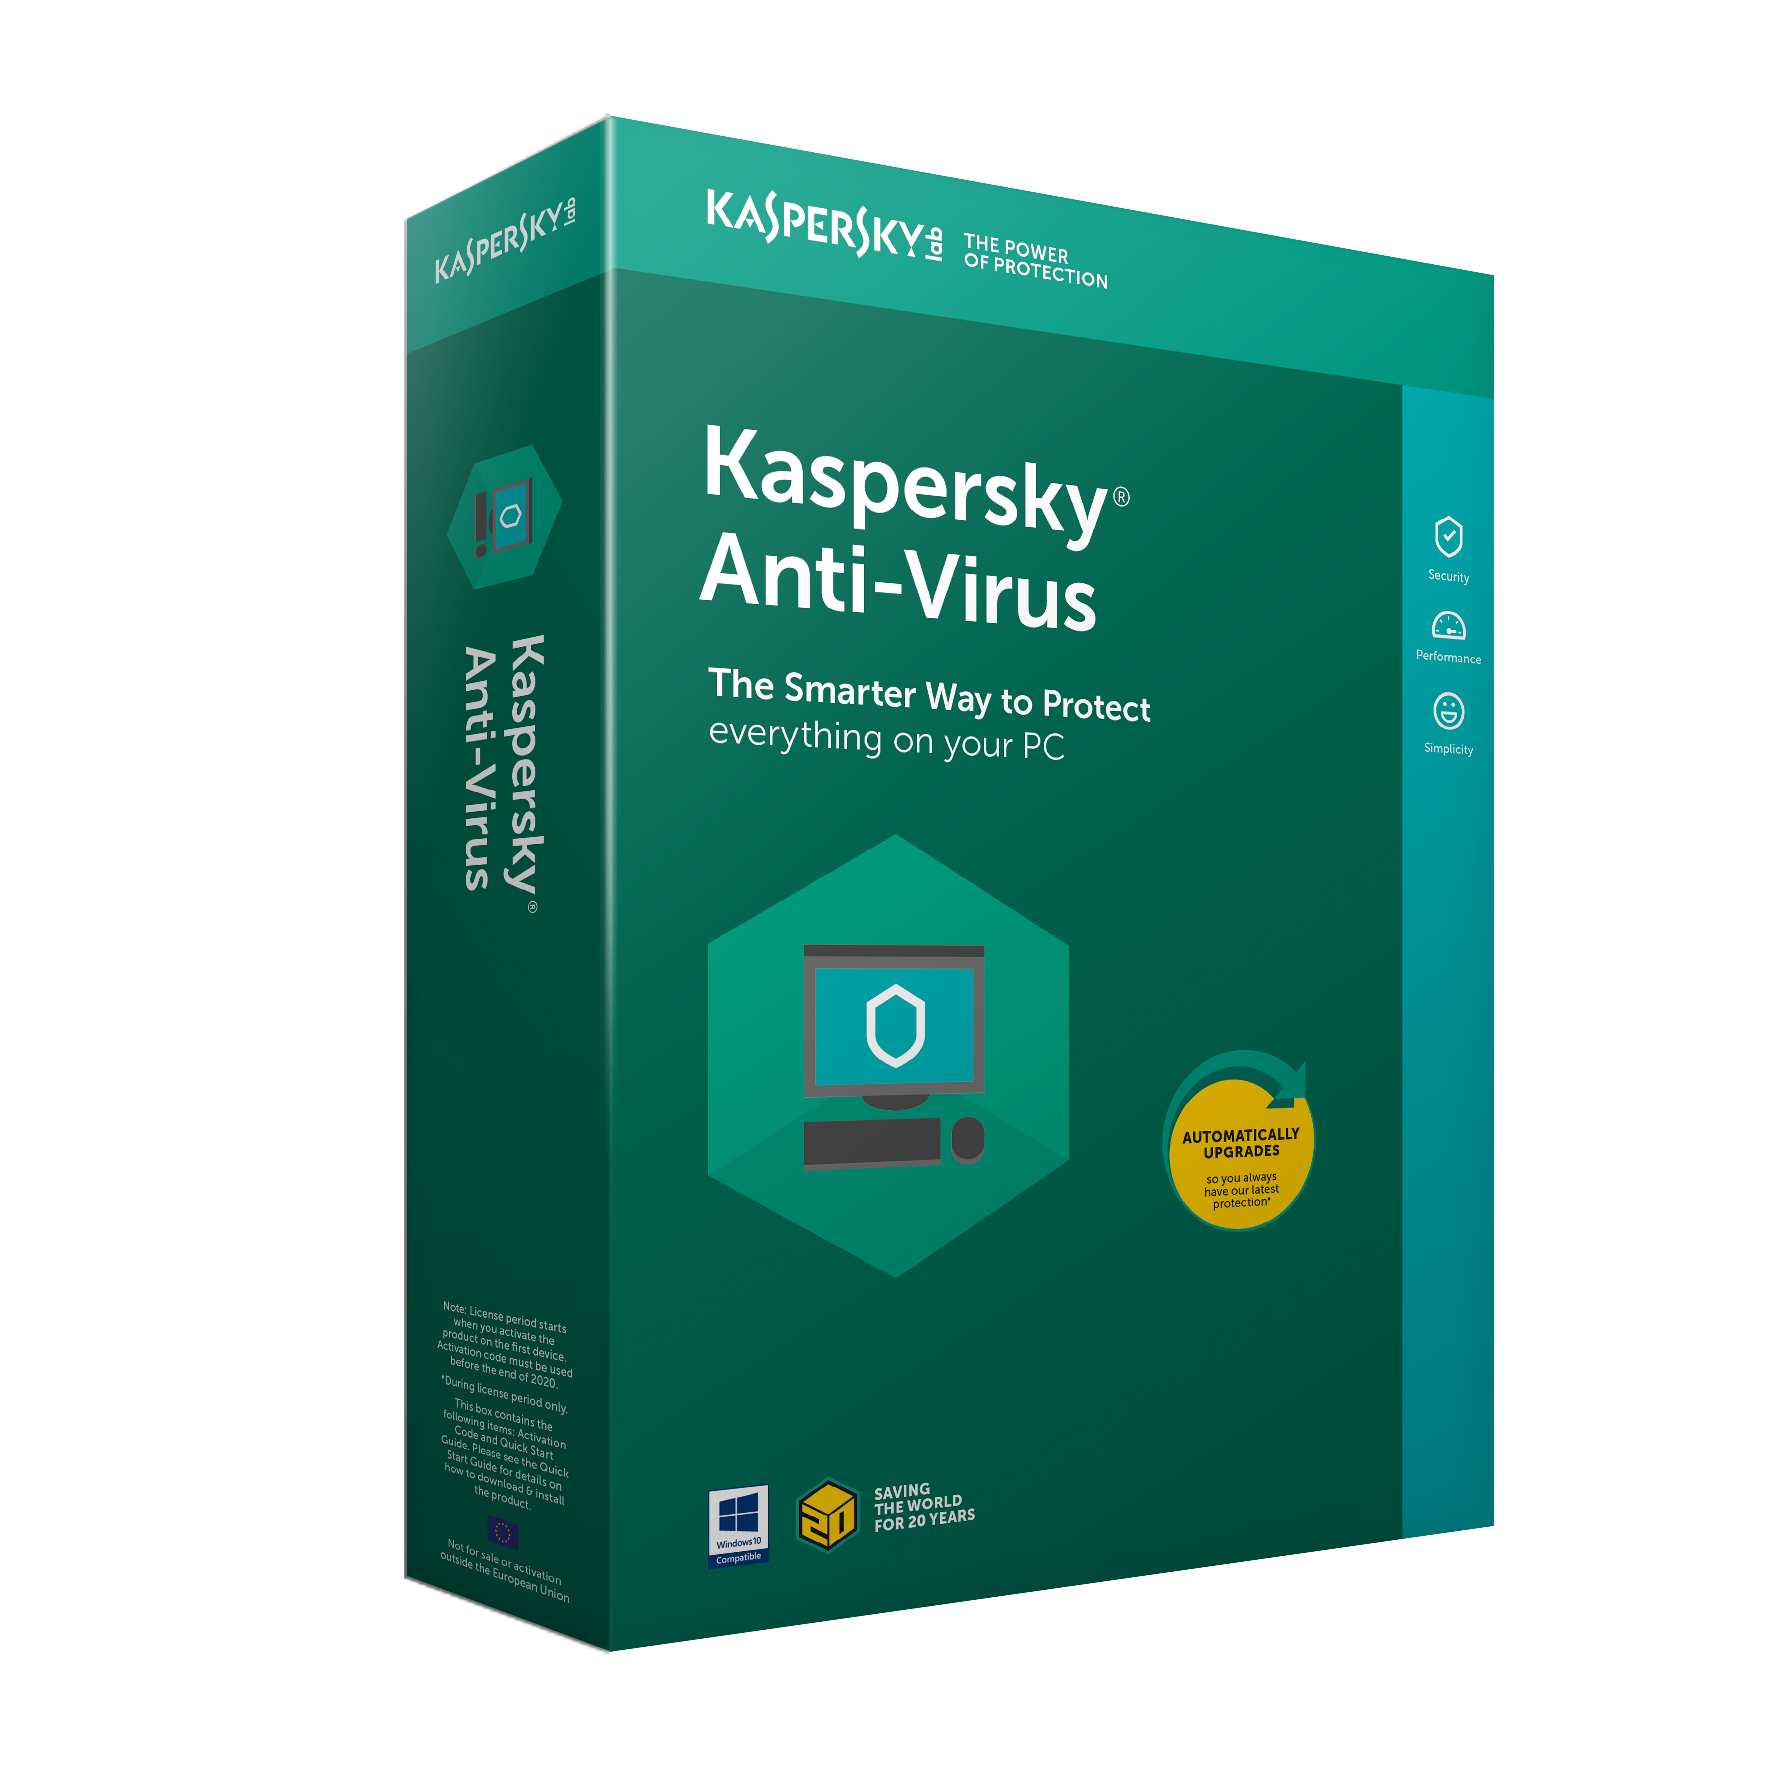 kaspersky for the mac